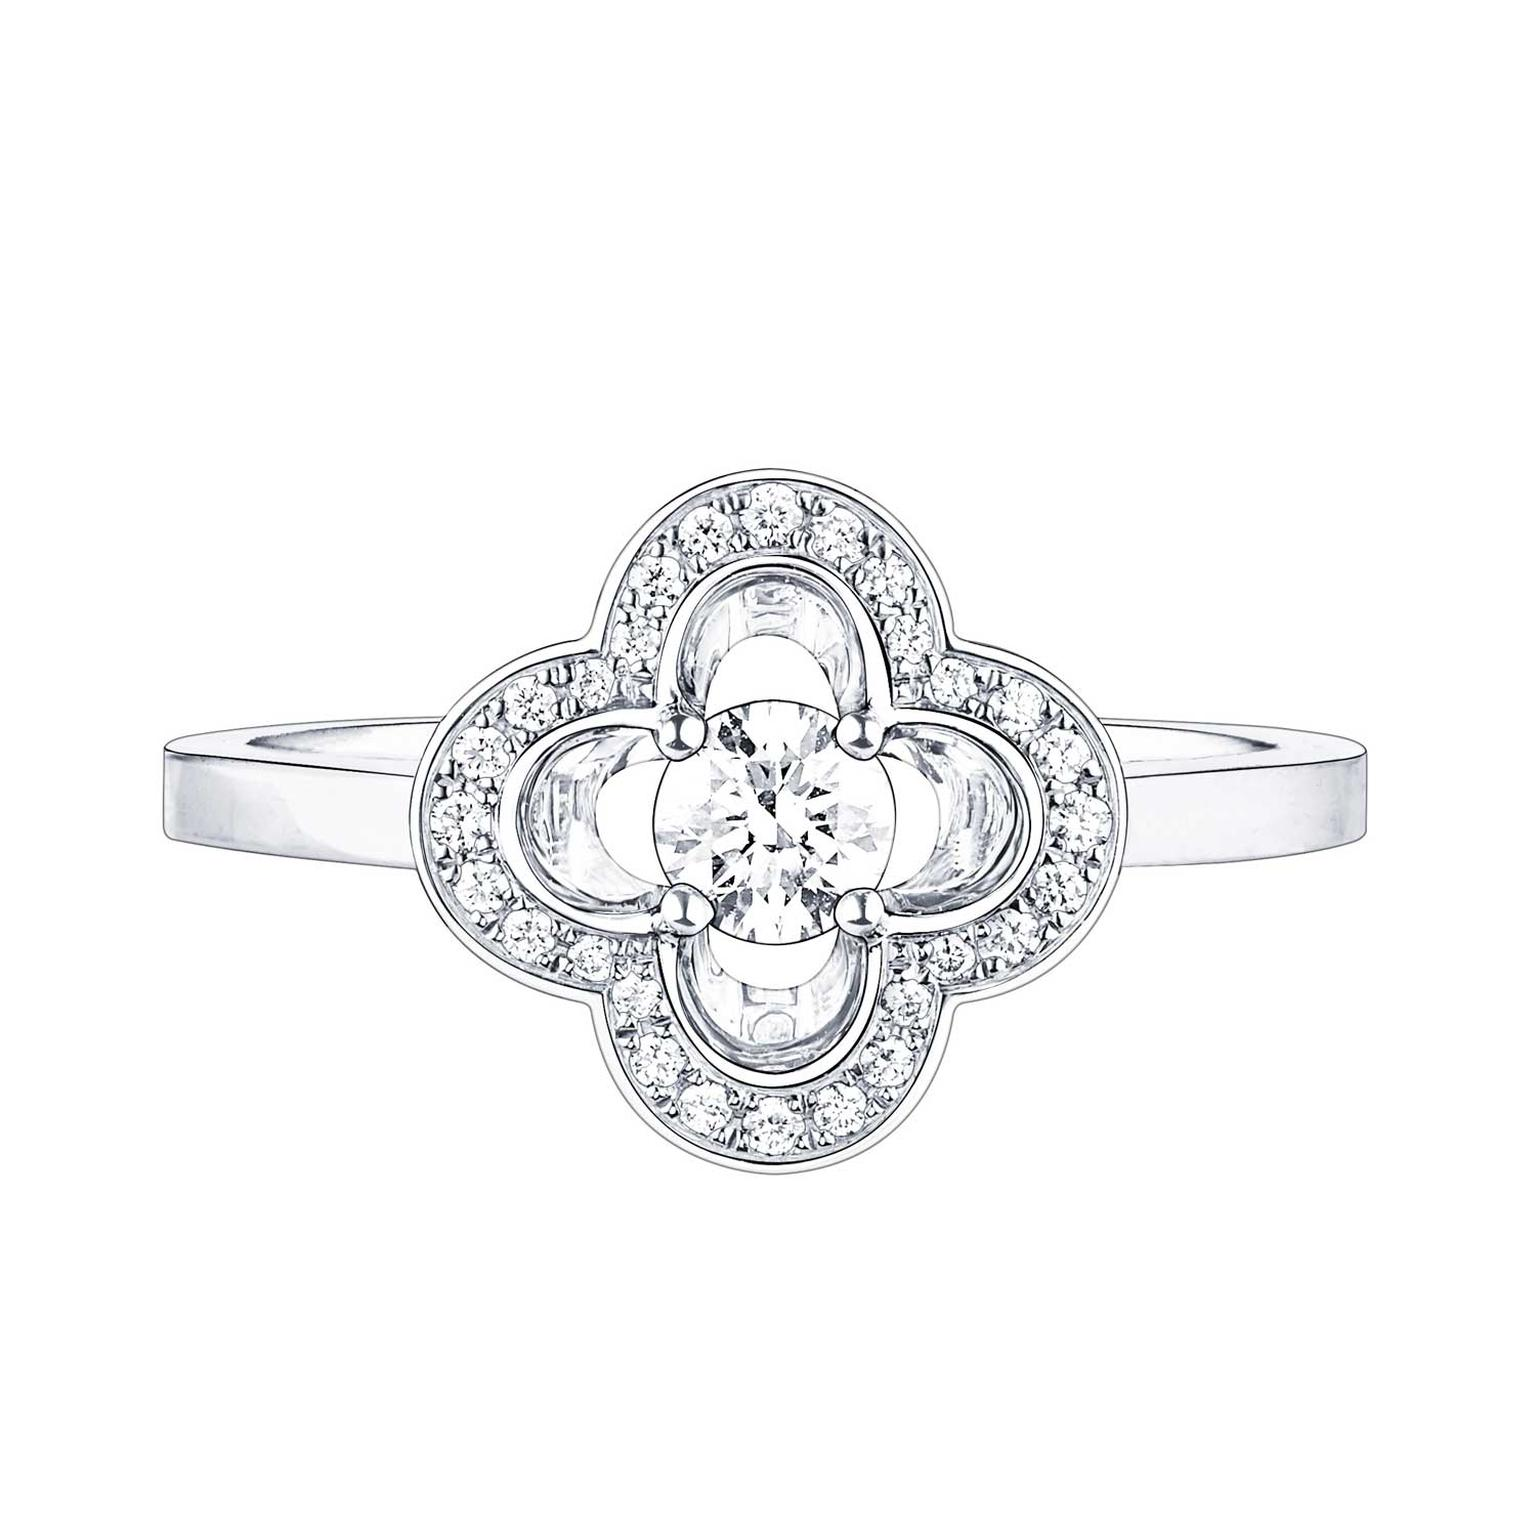 Louis Vuitton Les Ardentes diamond ring